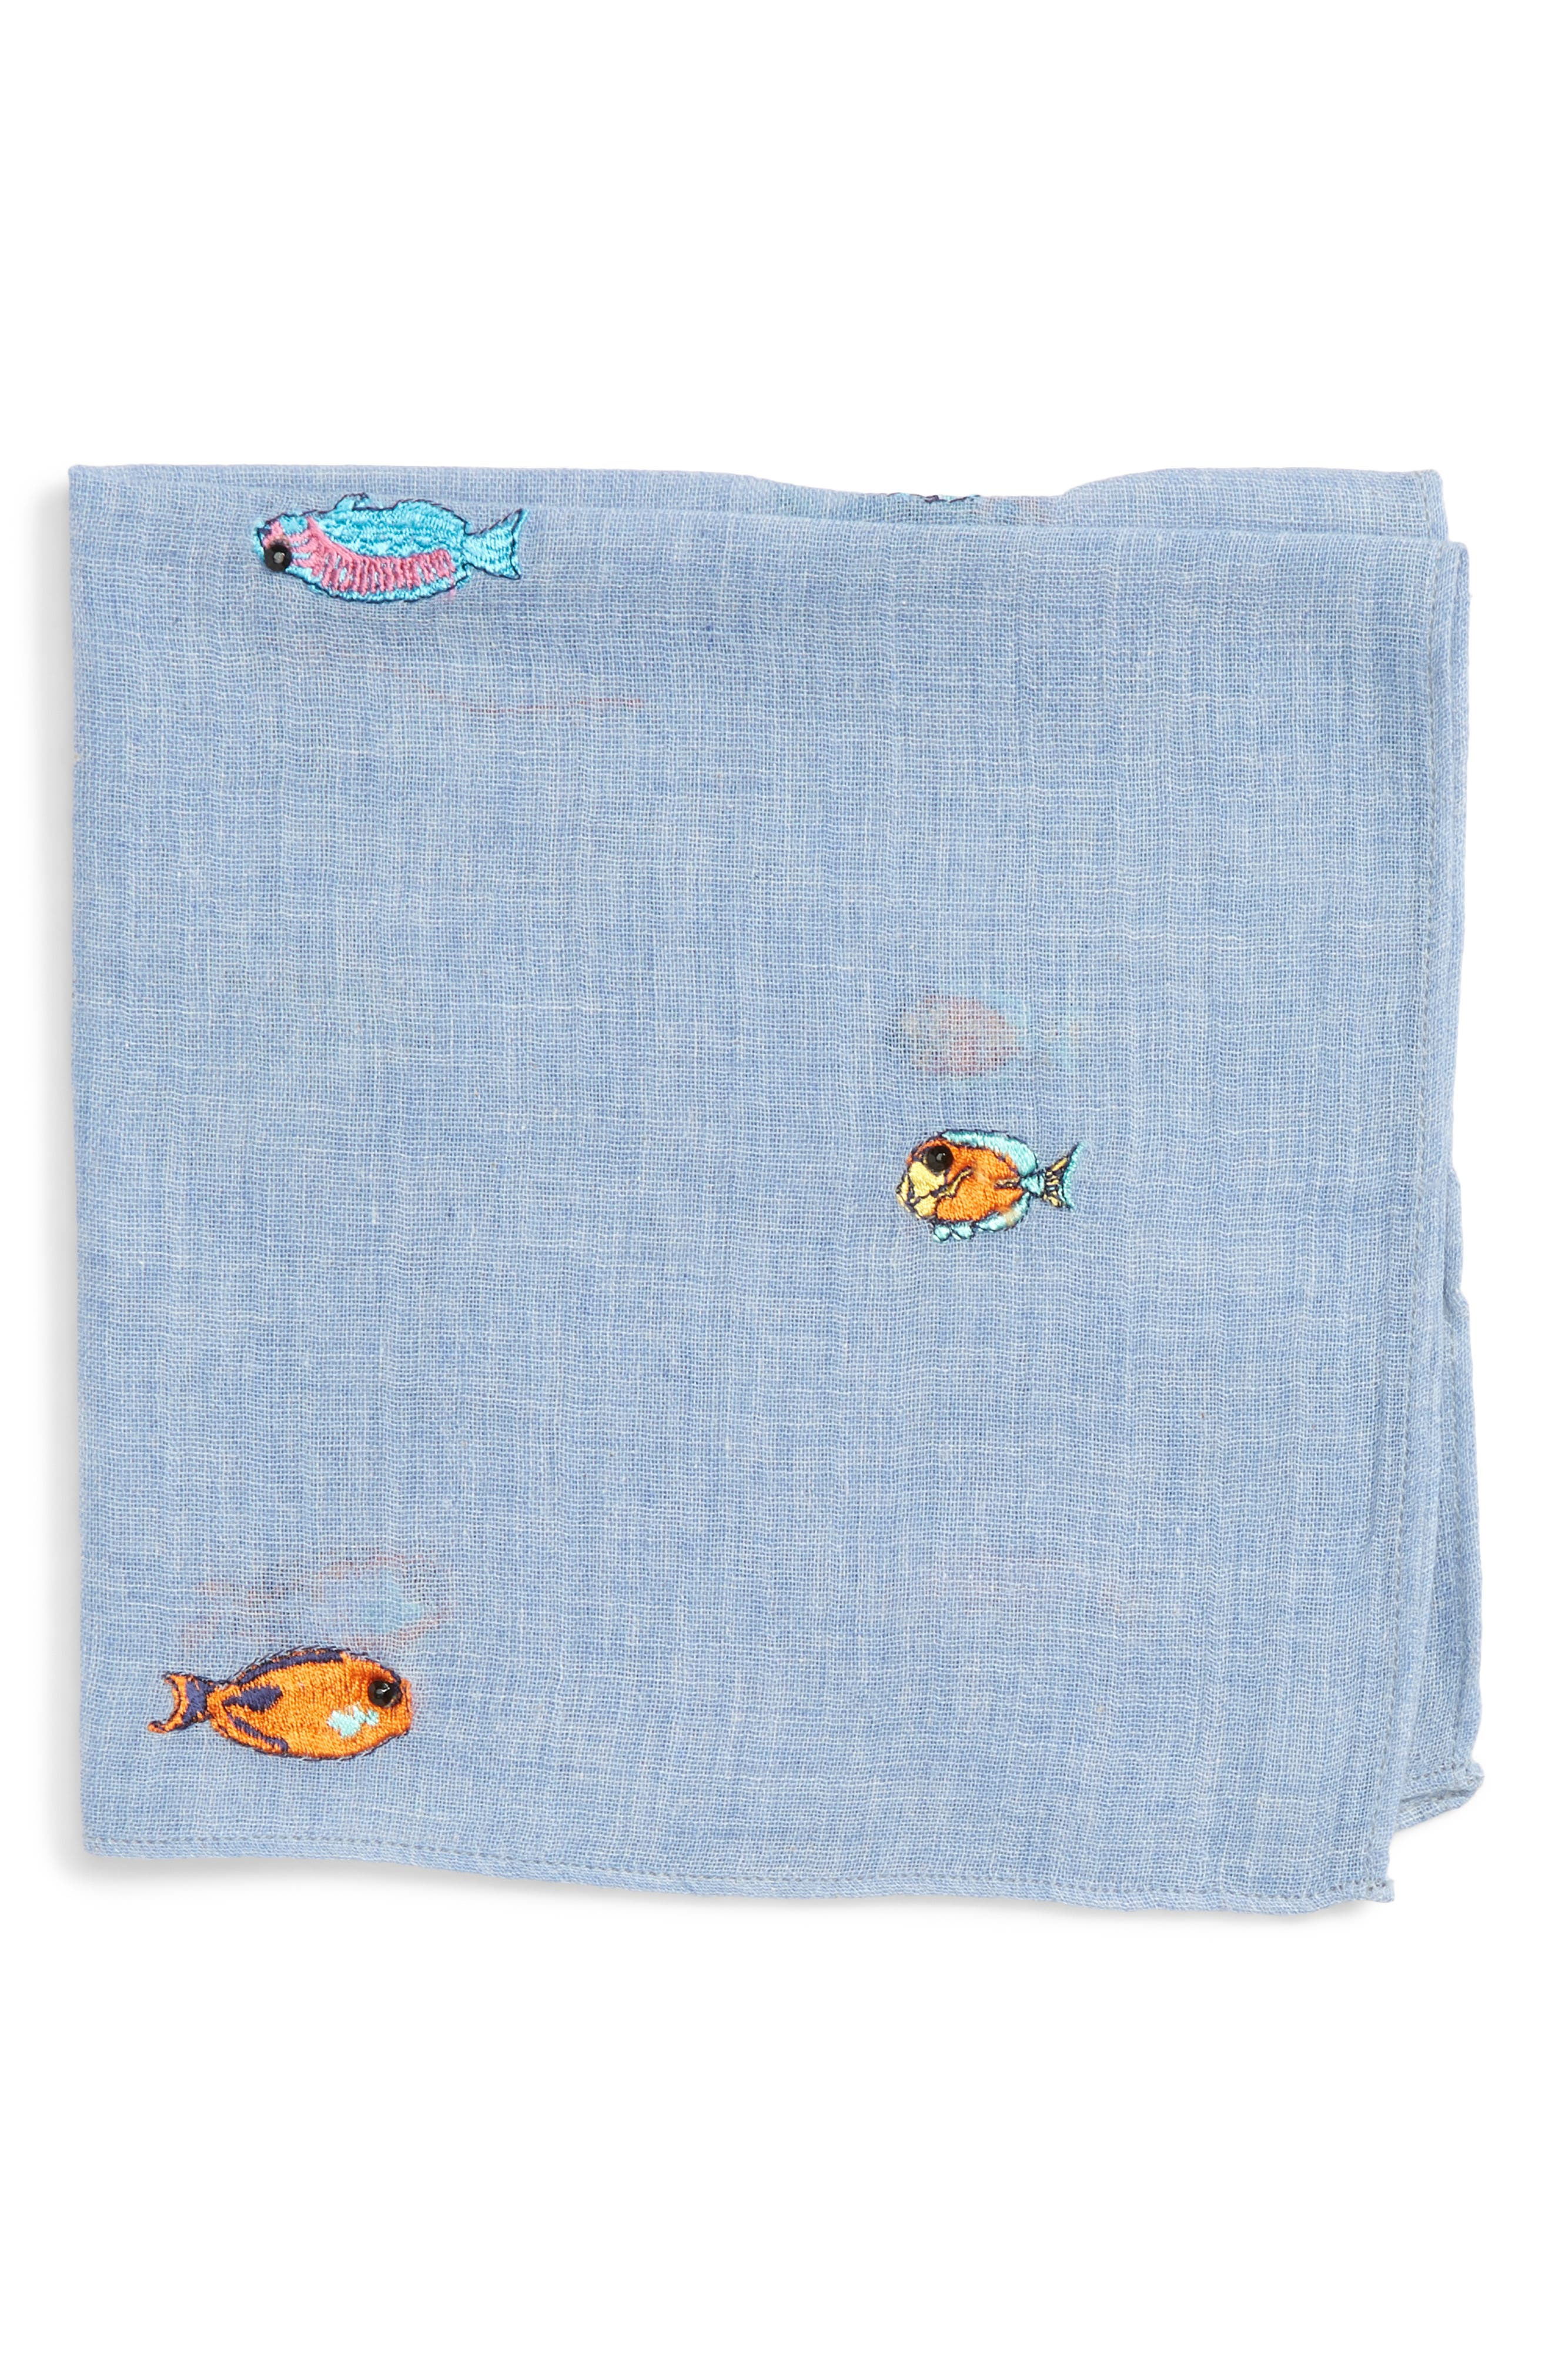 Embroidered Fish Pocket Square,                             Main thumbnail 1, color,                             424